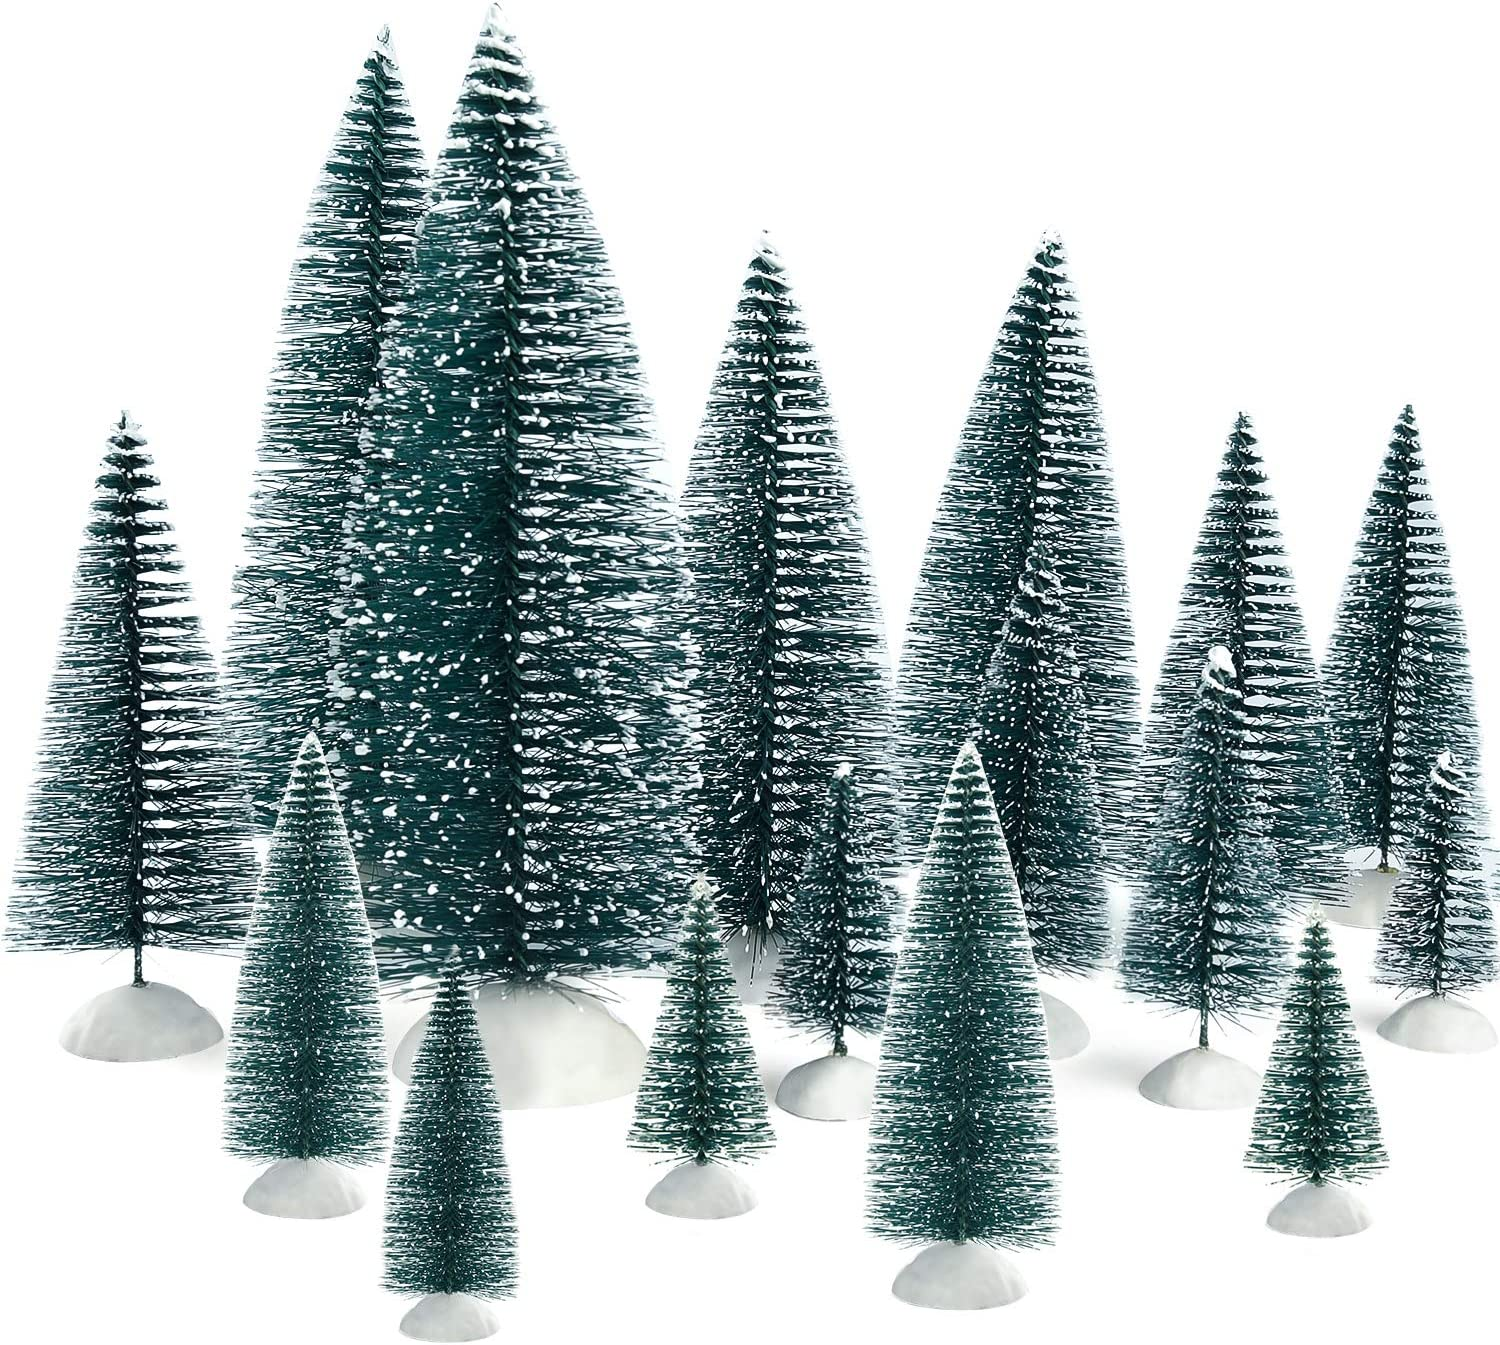 KUUQA 46Pcs Mini Christmas Trees Bottle Brush Trees Miniature Sisal Snow Frost Trees Tabletop Trees with White Base Diorama Models for Christmas Party Home Decoration Home Table Top Decoration